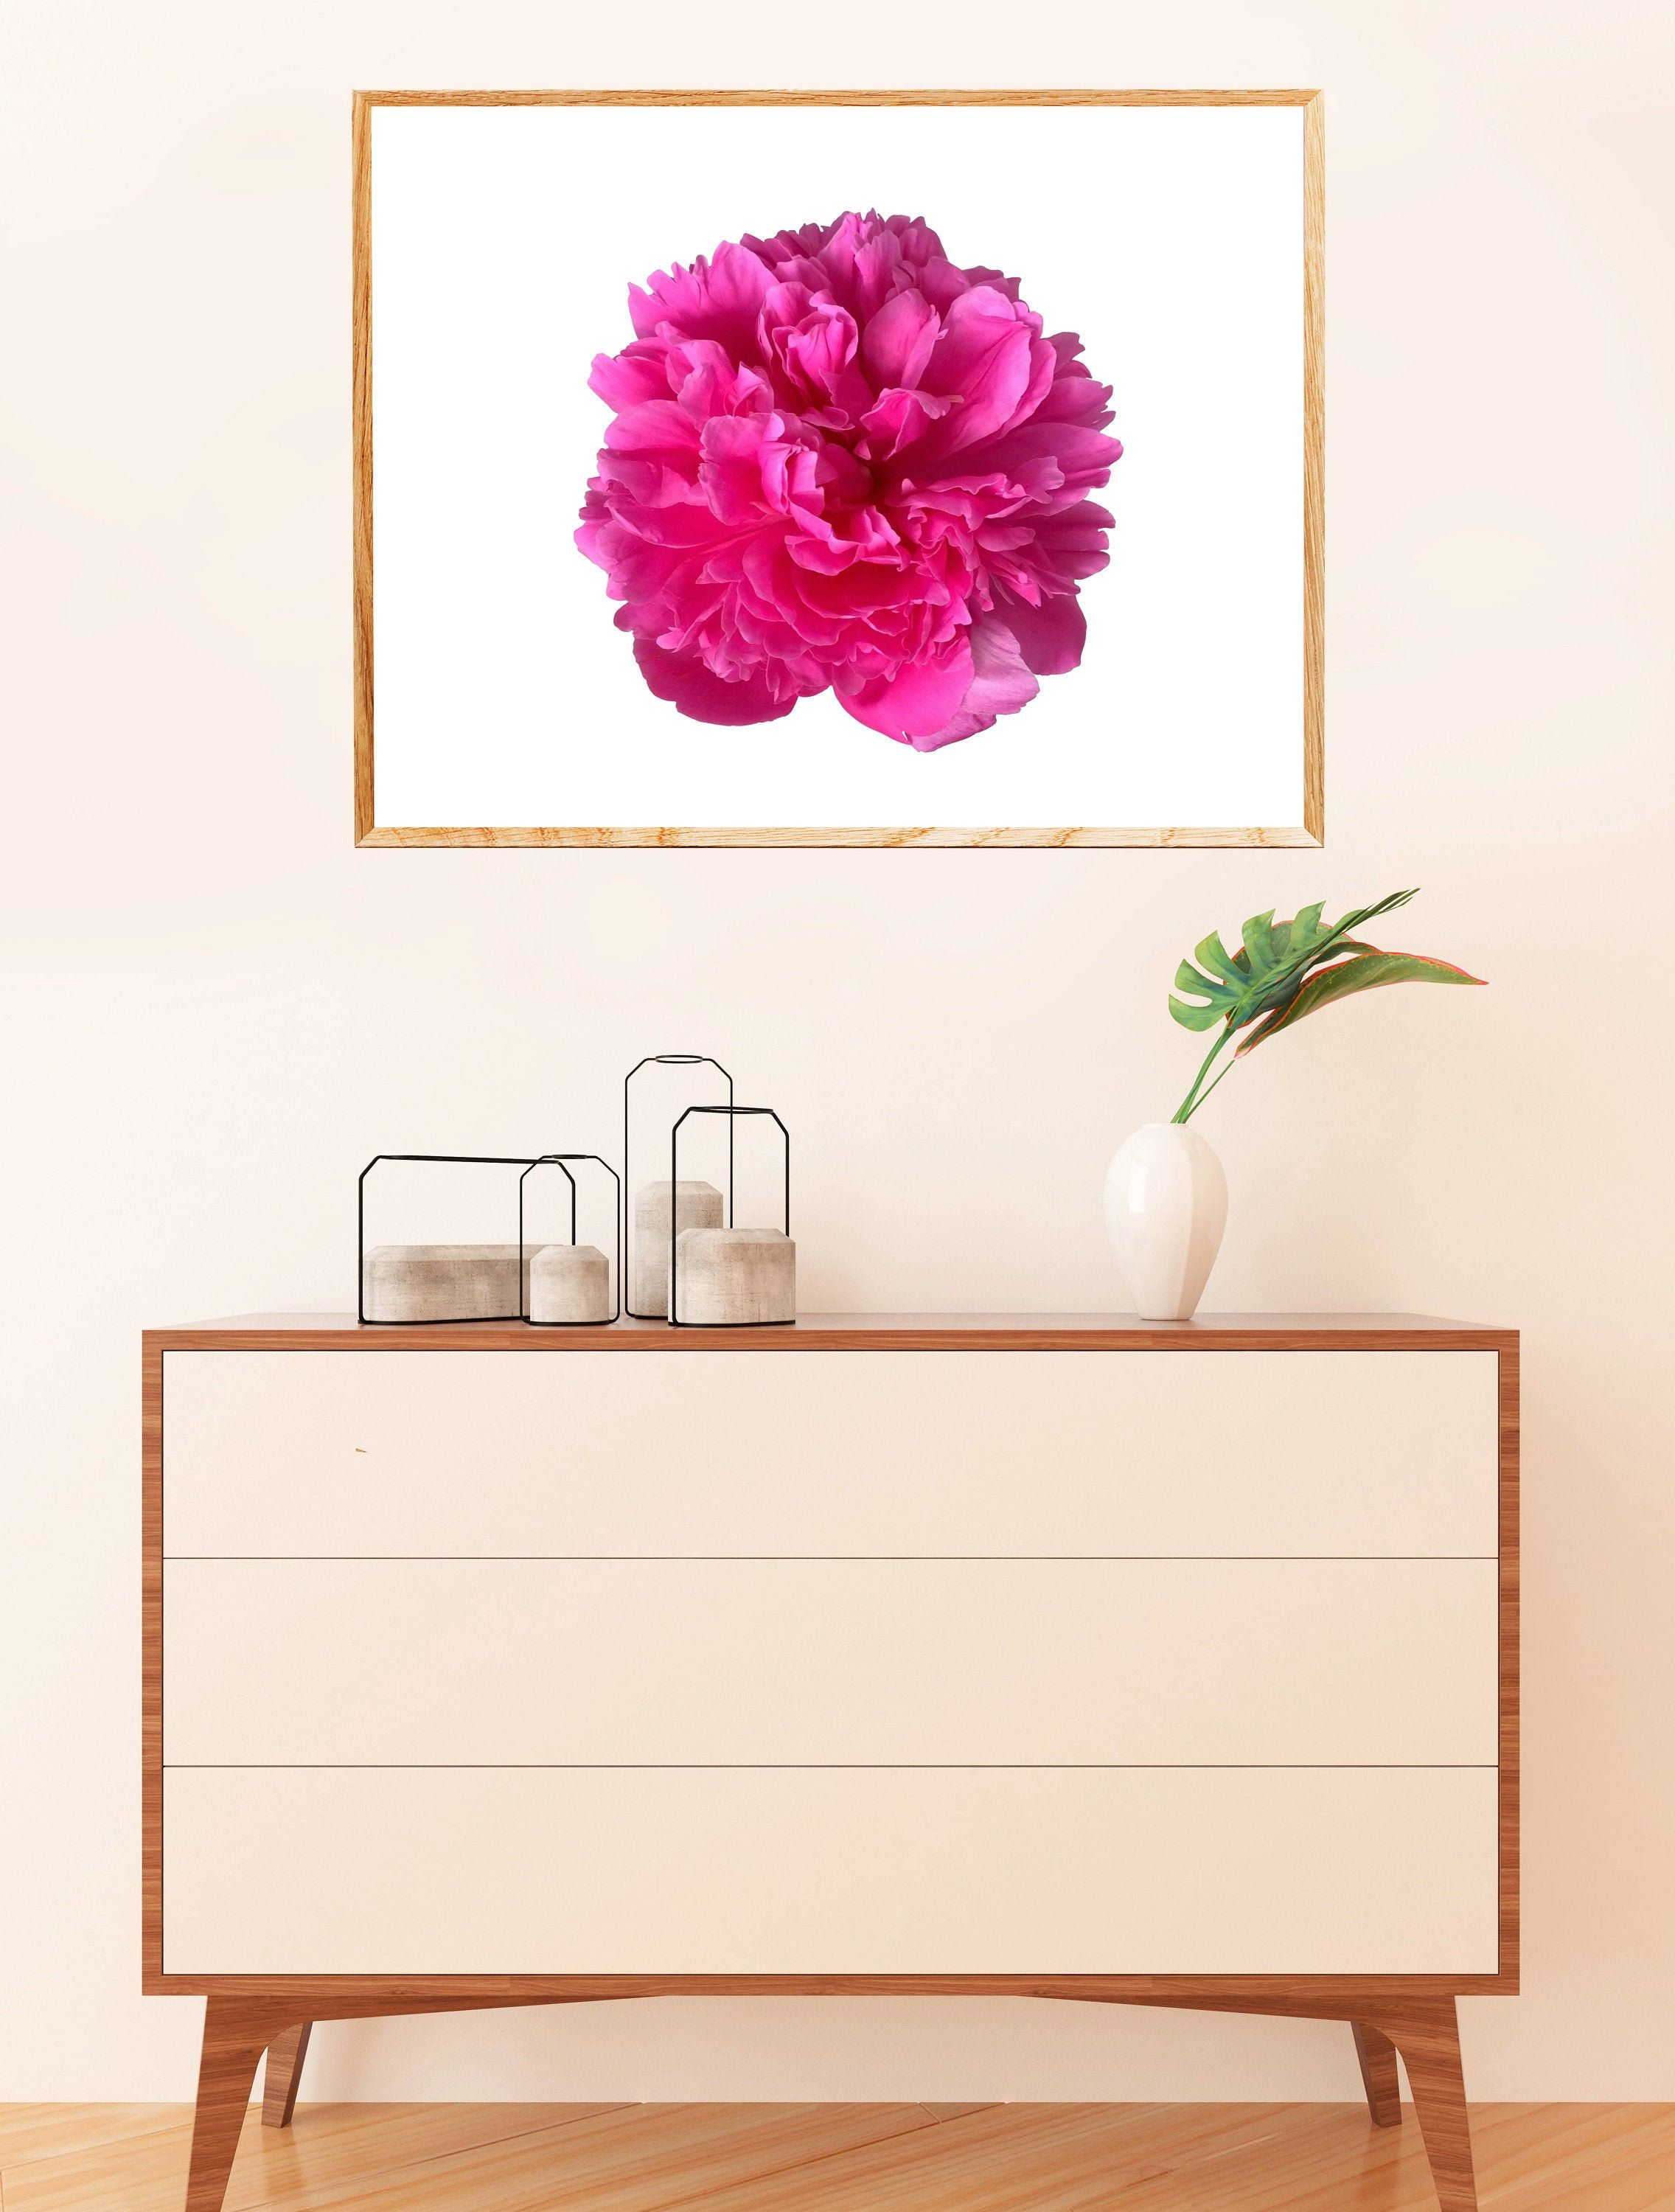 Floral Wall Art Hot Pink Peony Print Flower Photography Etsy Pink Peonies Print Floral Wall Art Floral Wall